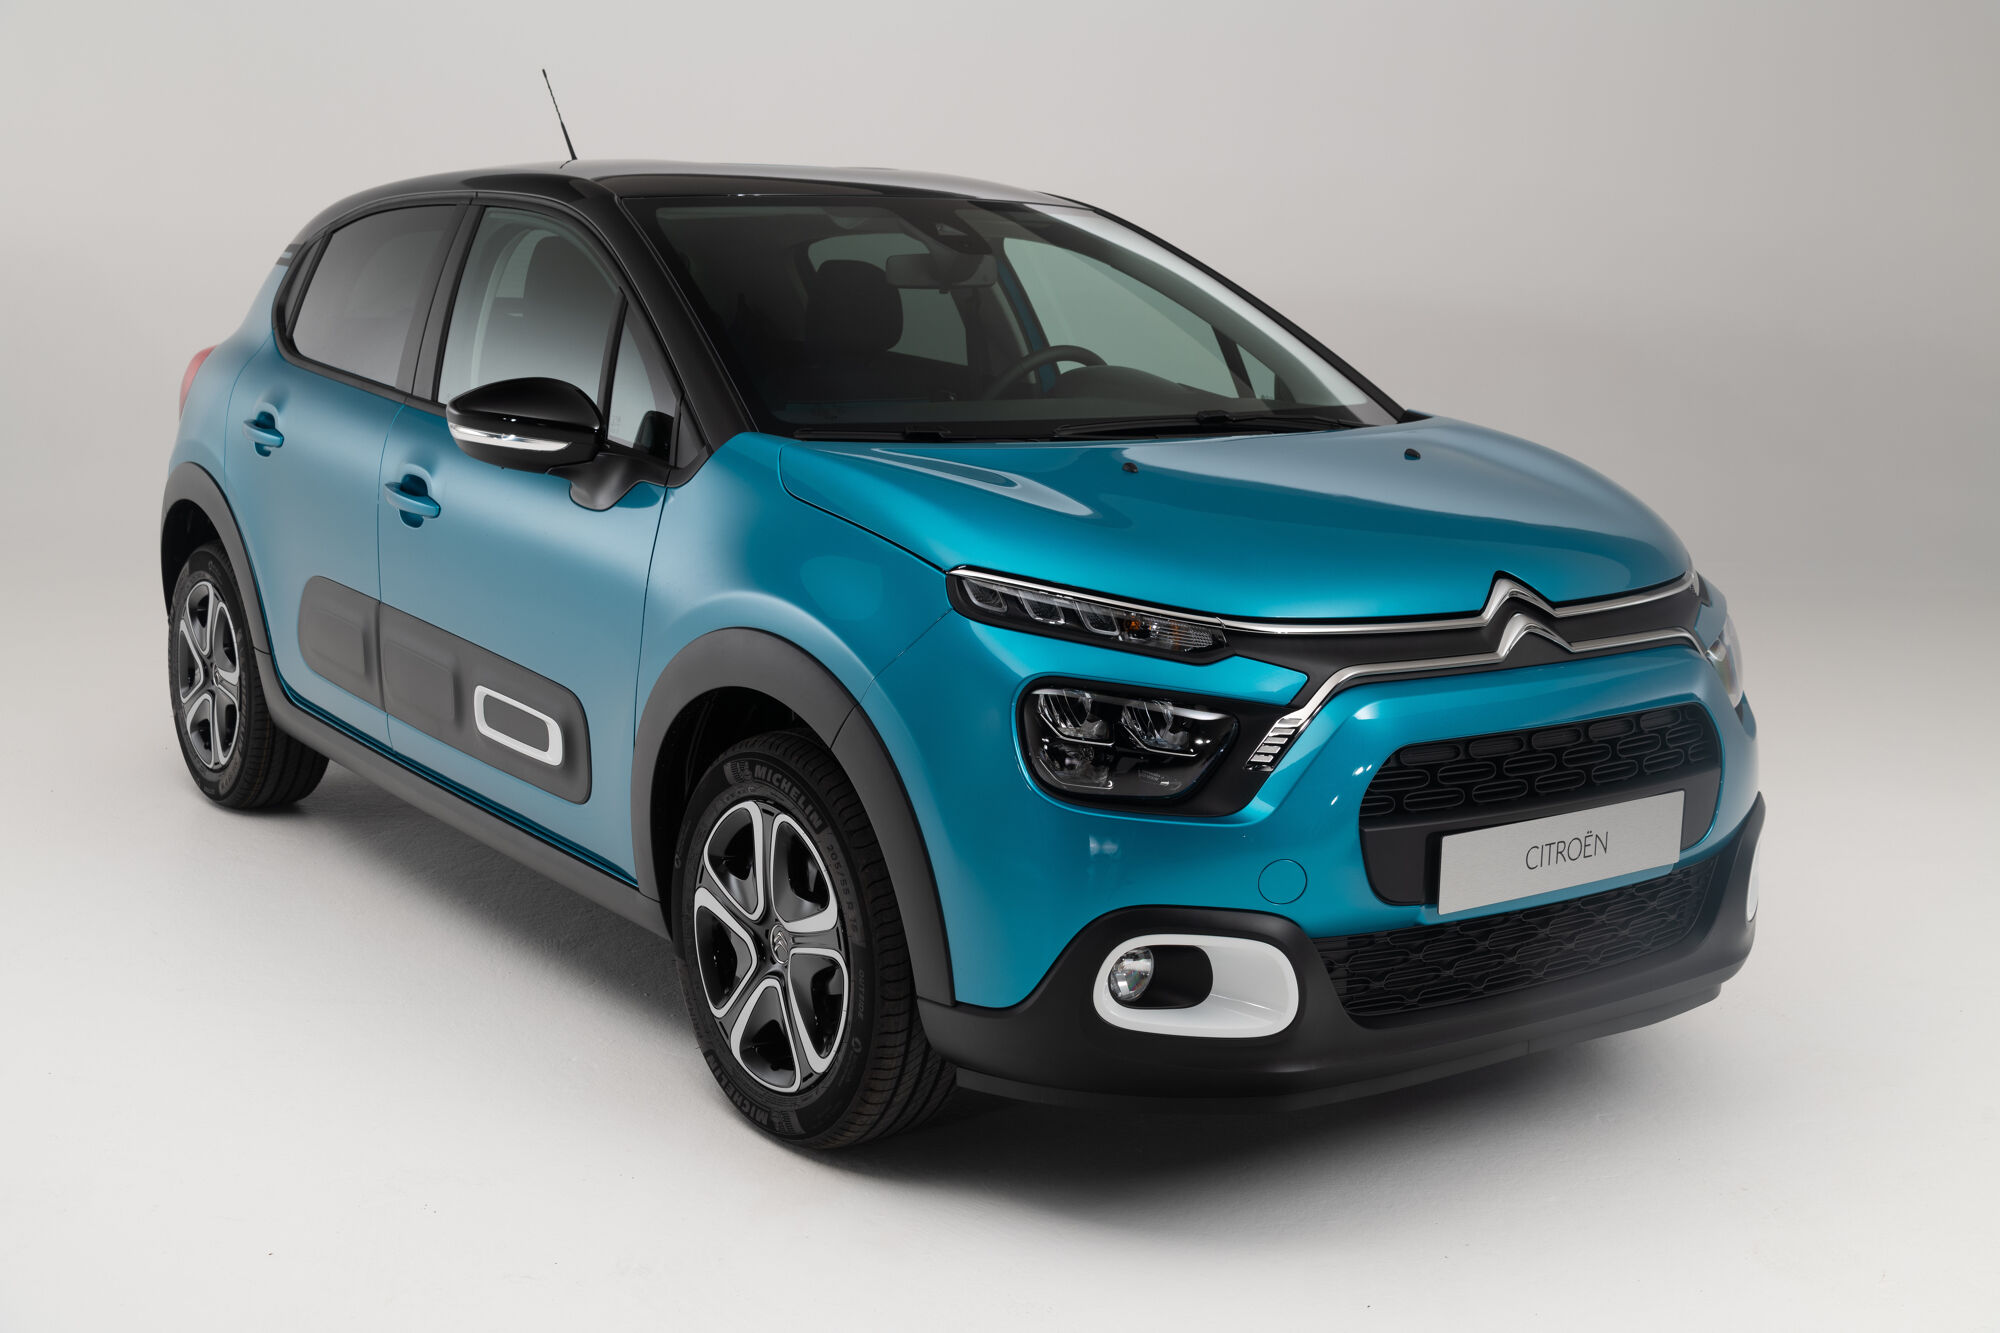 Citroën cover